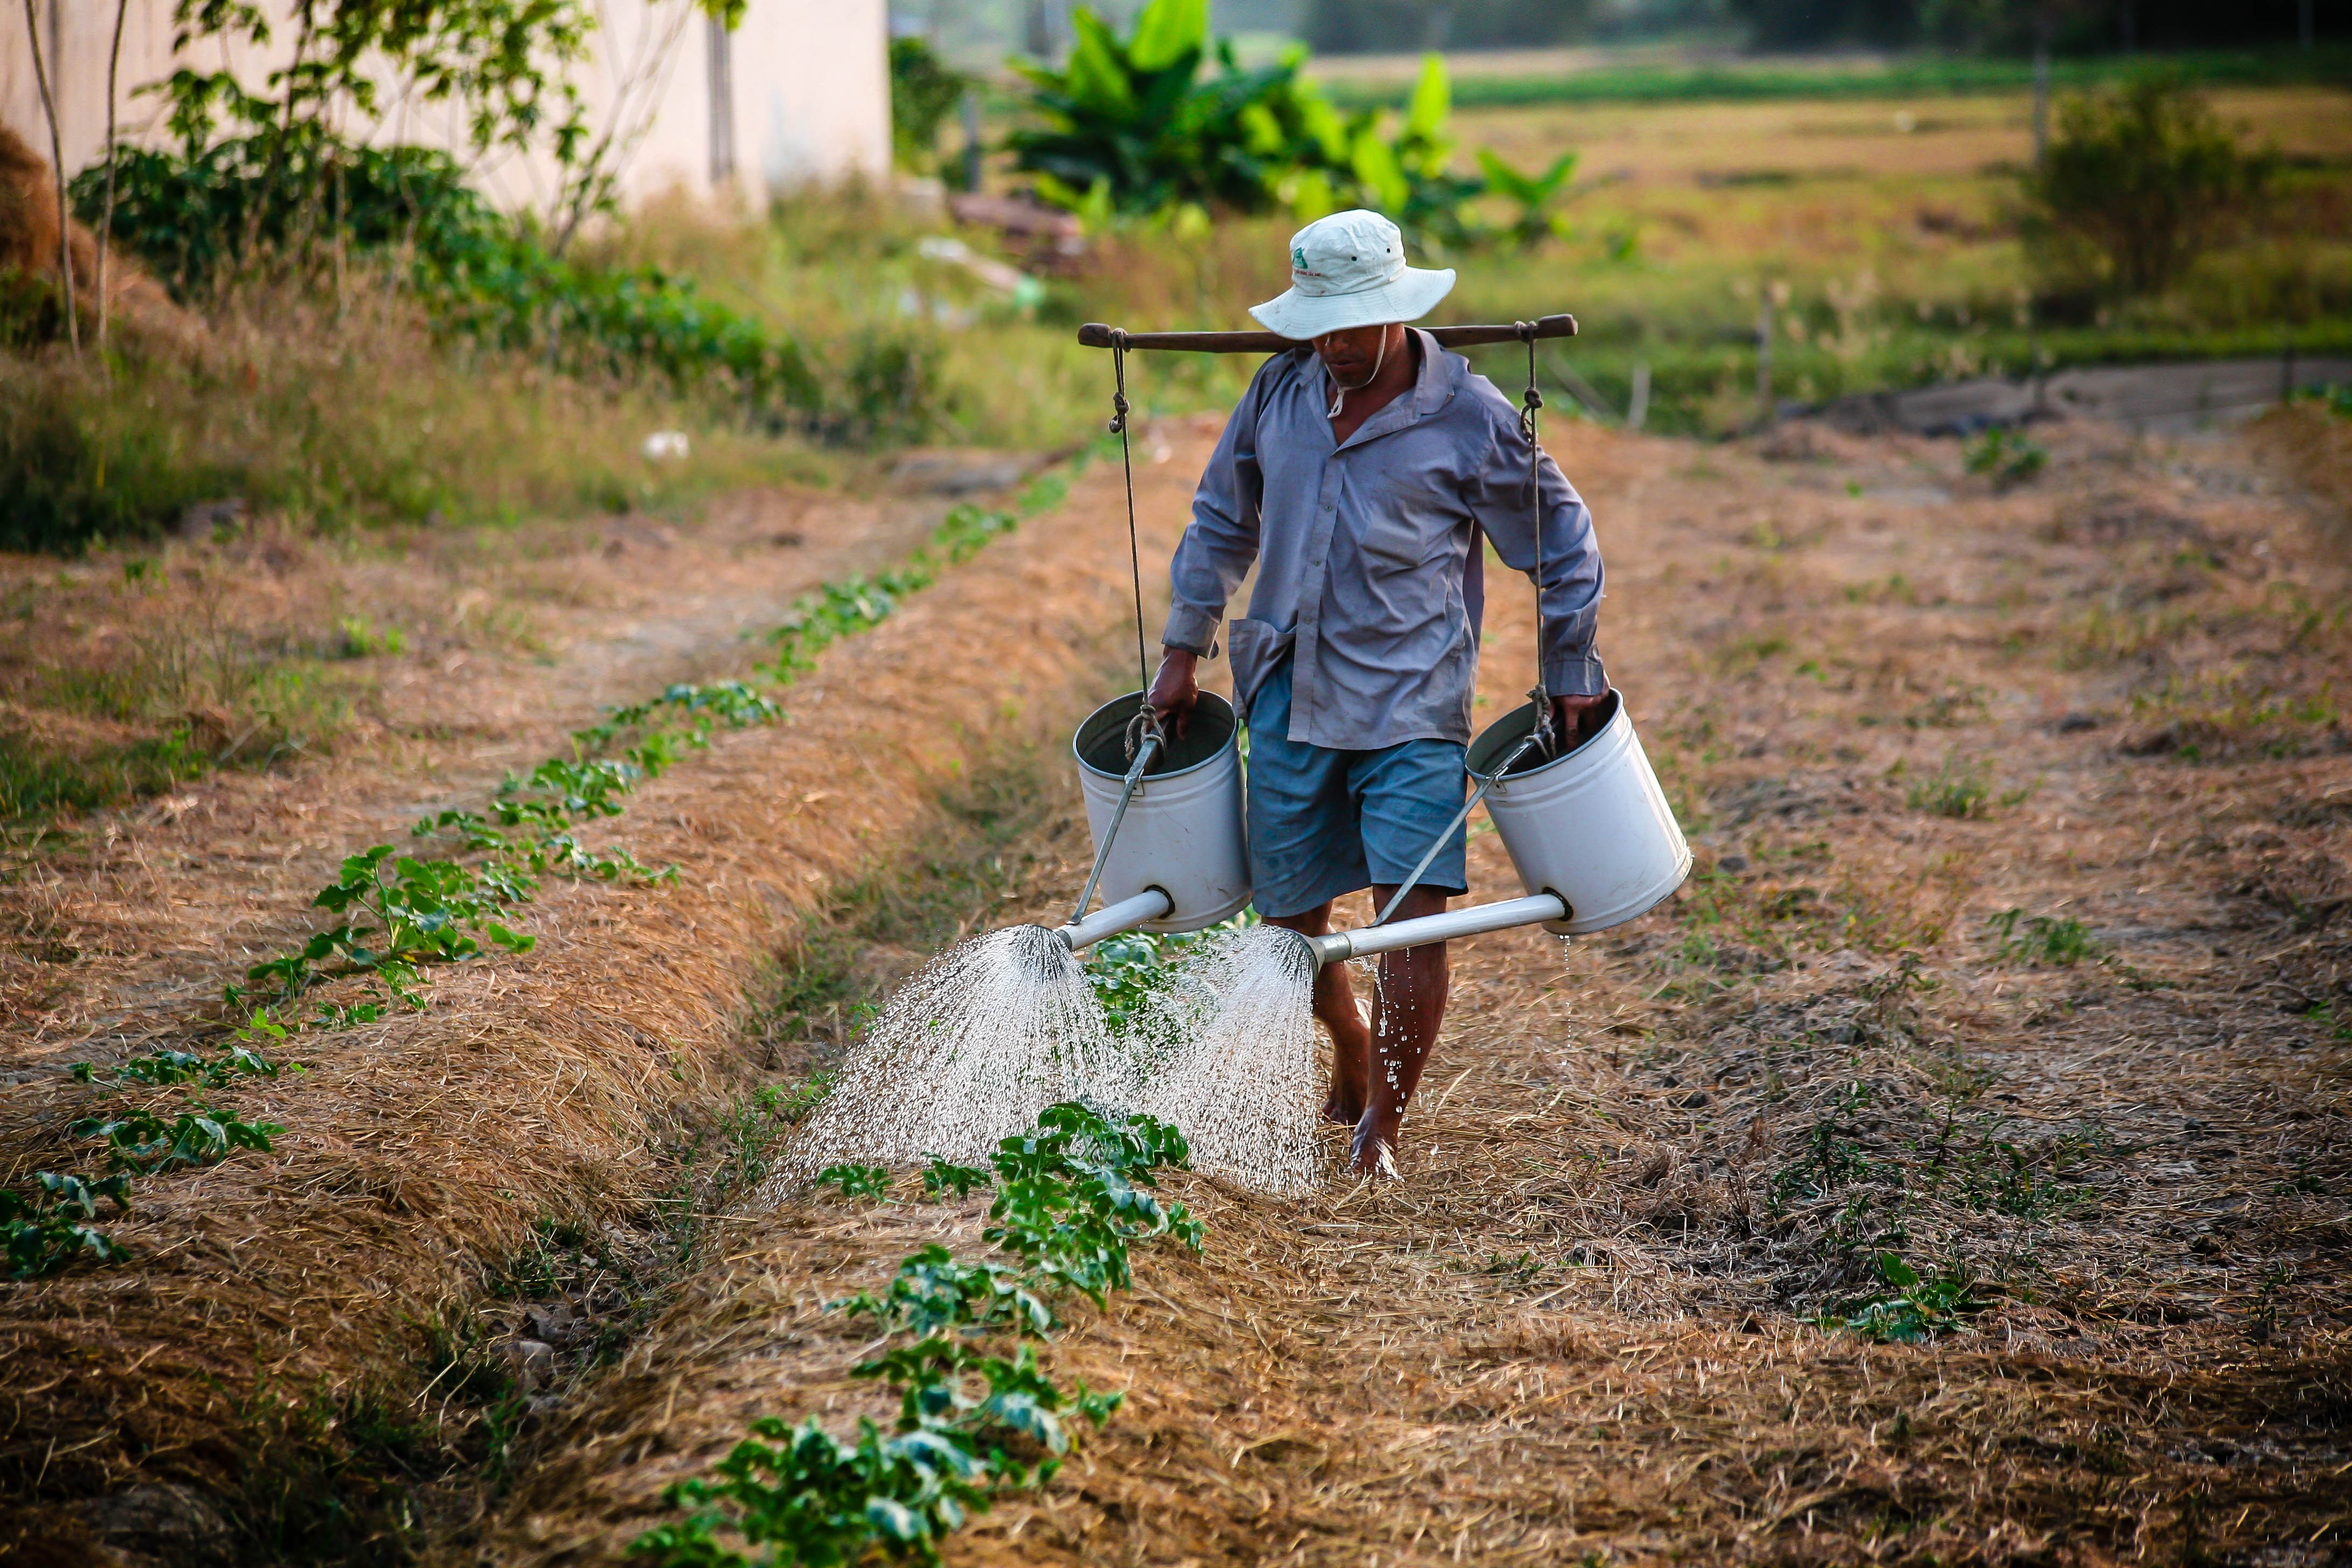 watering-watering-can-man-vietnam-162637 (1)